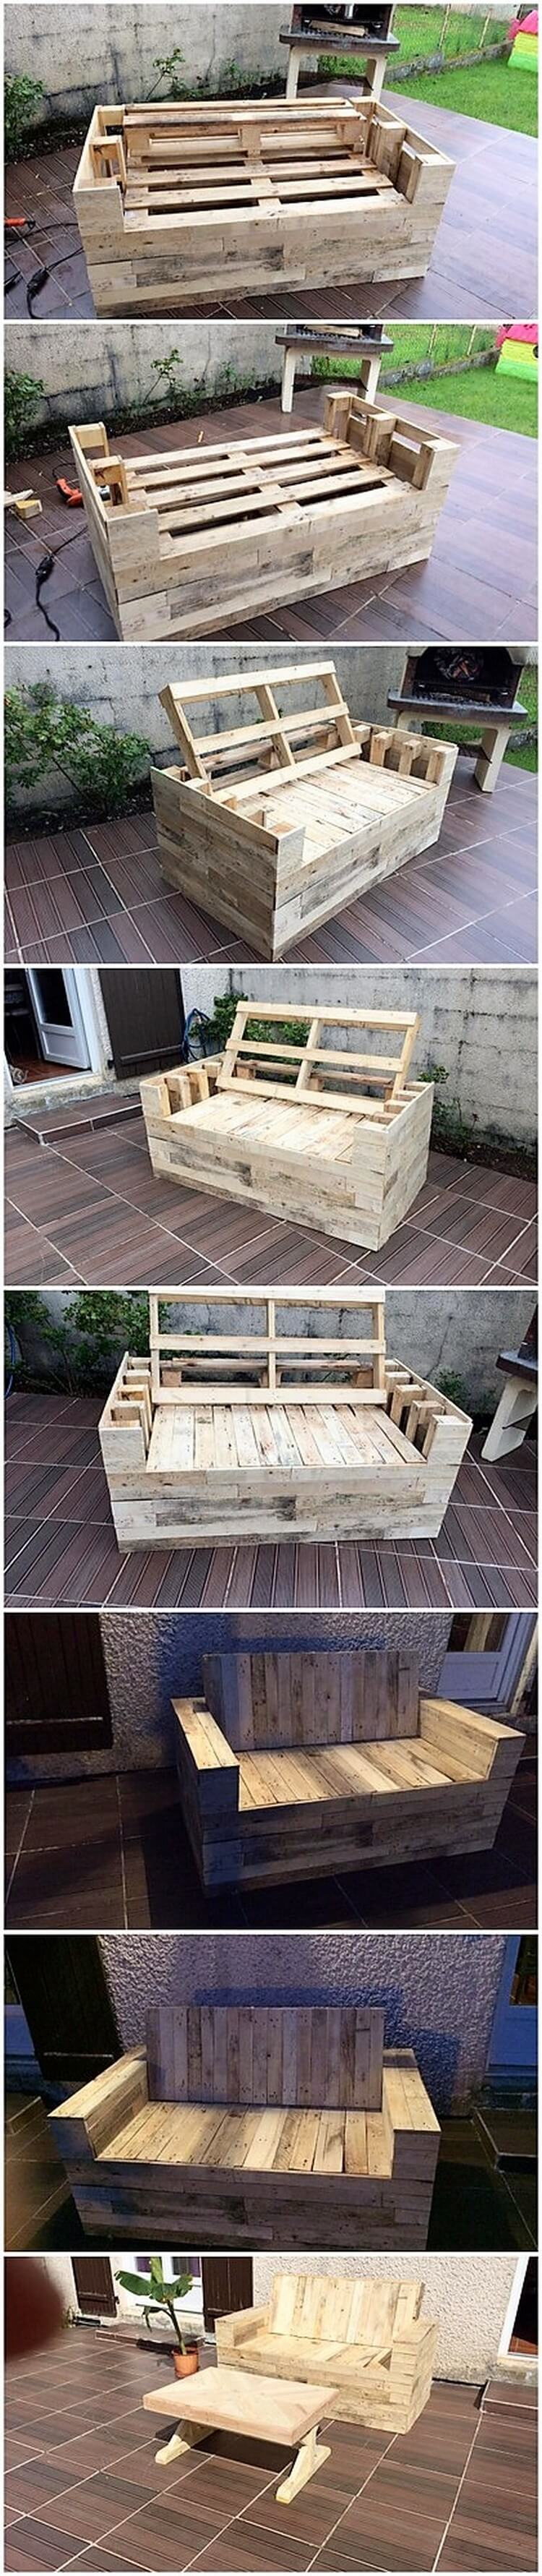 DIY Pallet Bench and Table